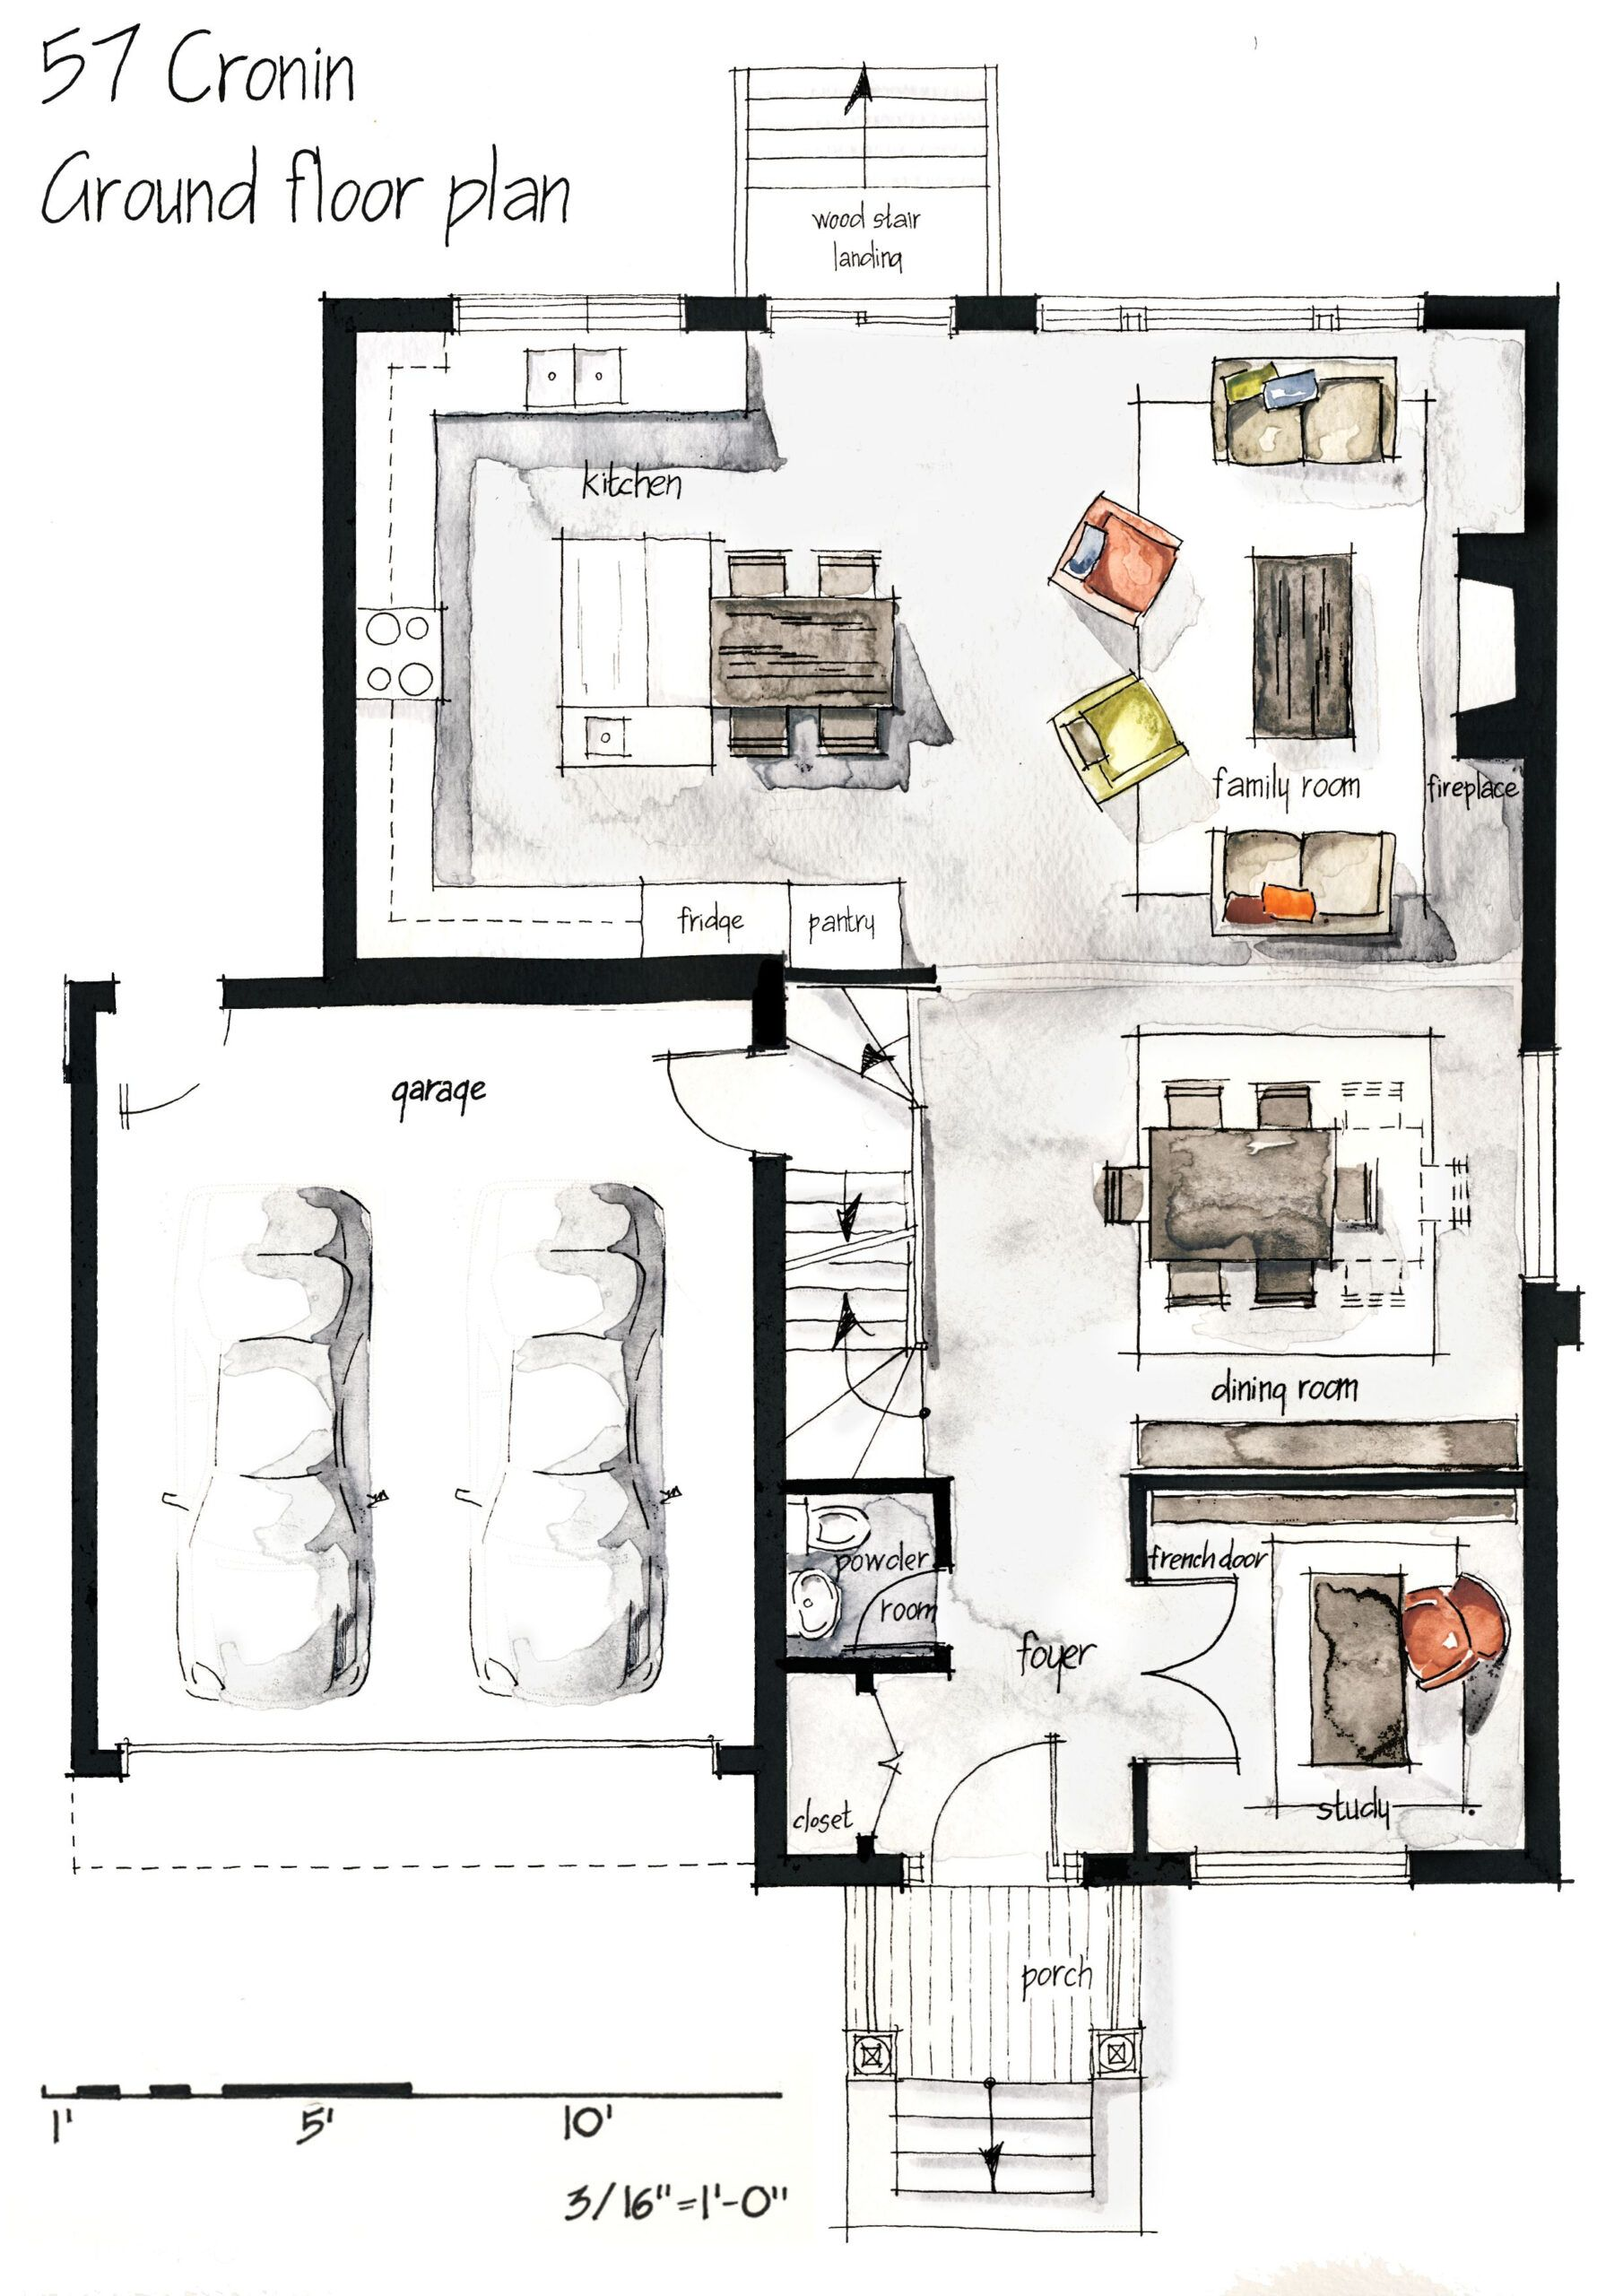 House Plan Drawing Images Interior Design Sketches Interior Design Plan Floor Plan Design